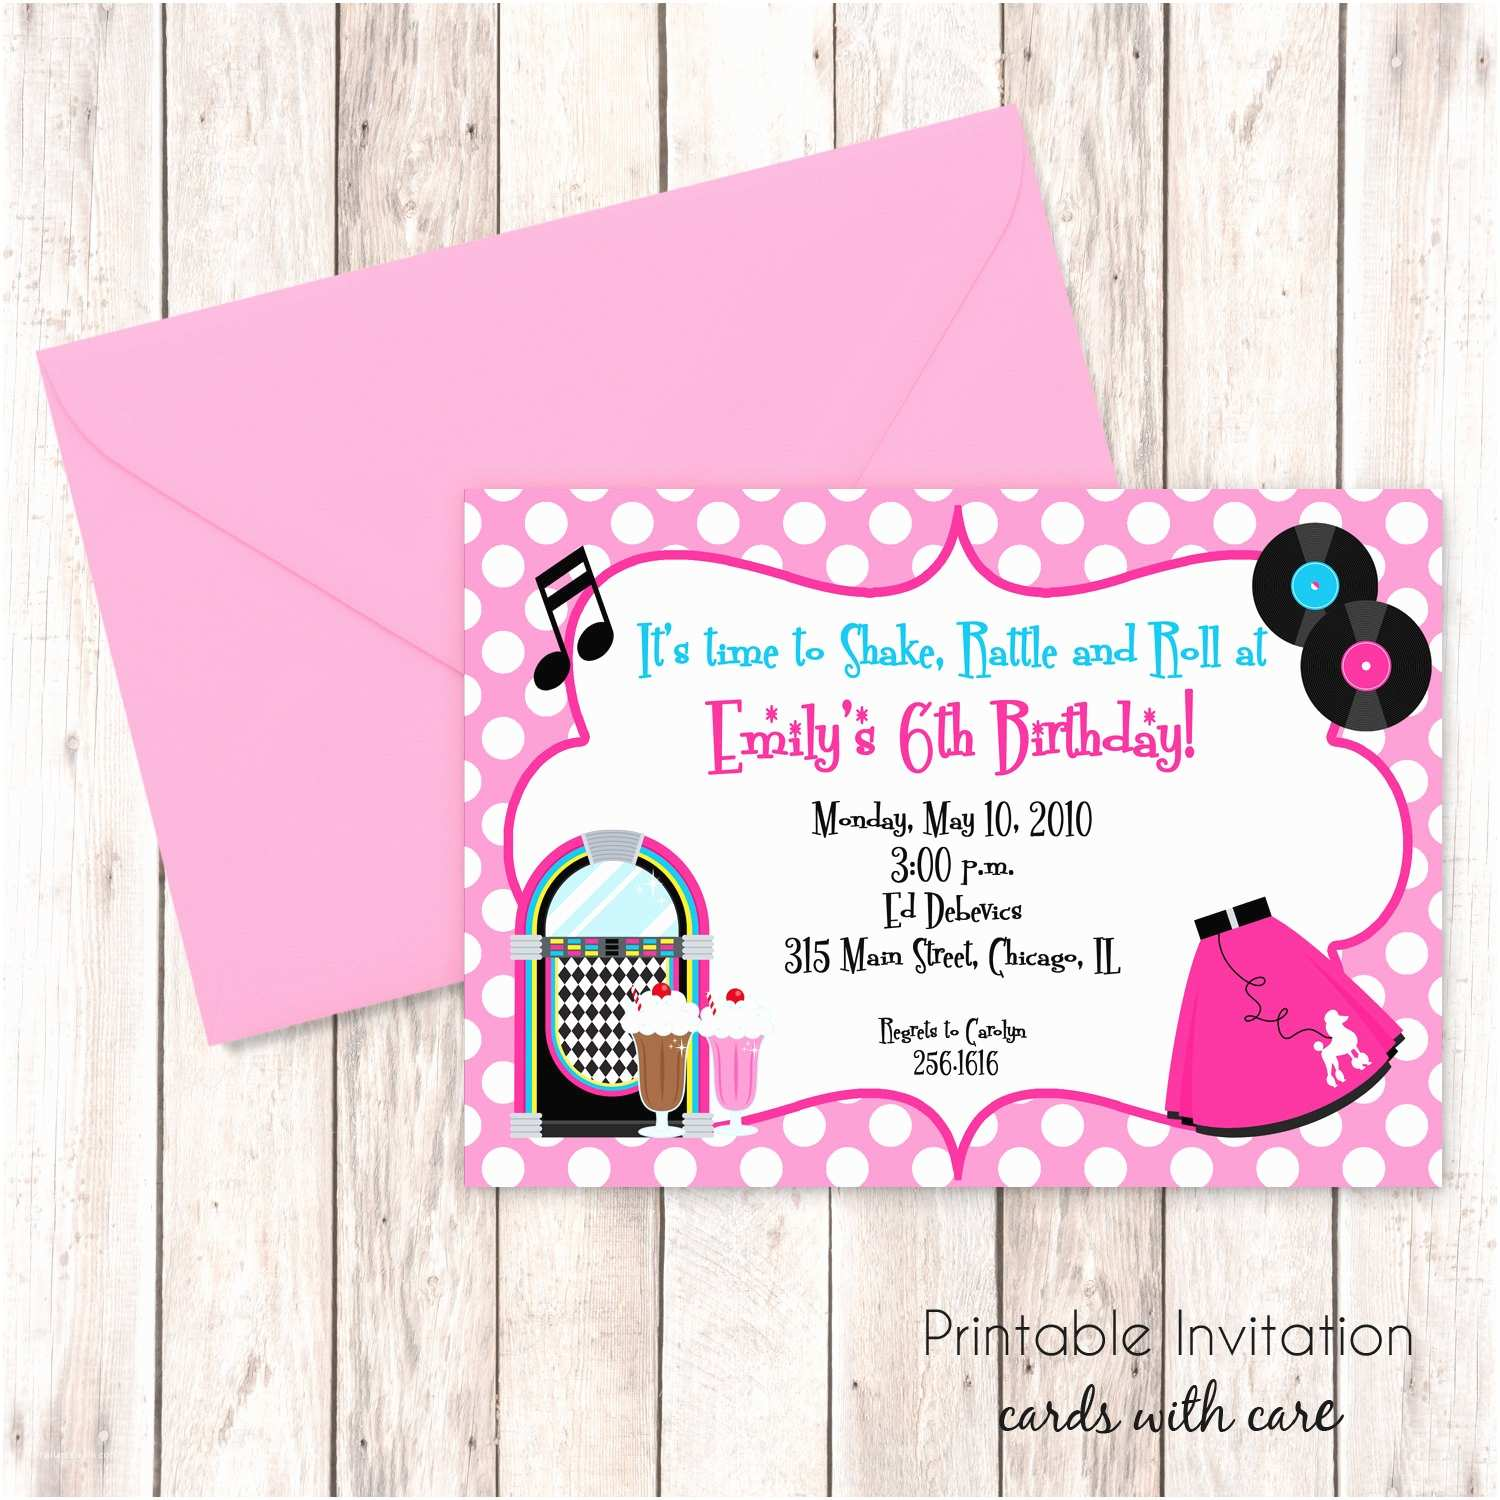 Cool Party Invitations Grand Cool Party Invitations Invitation With A